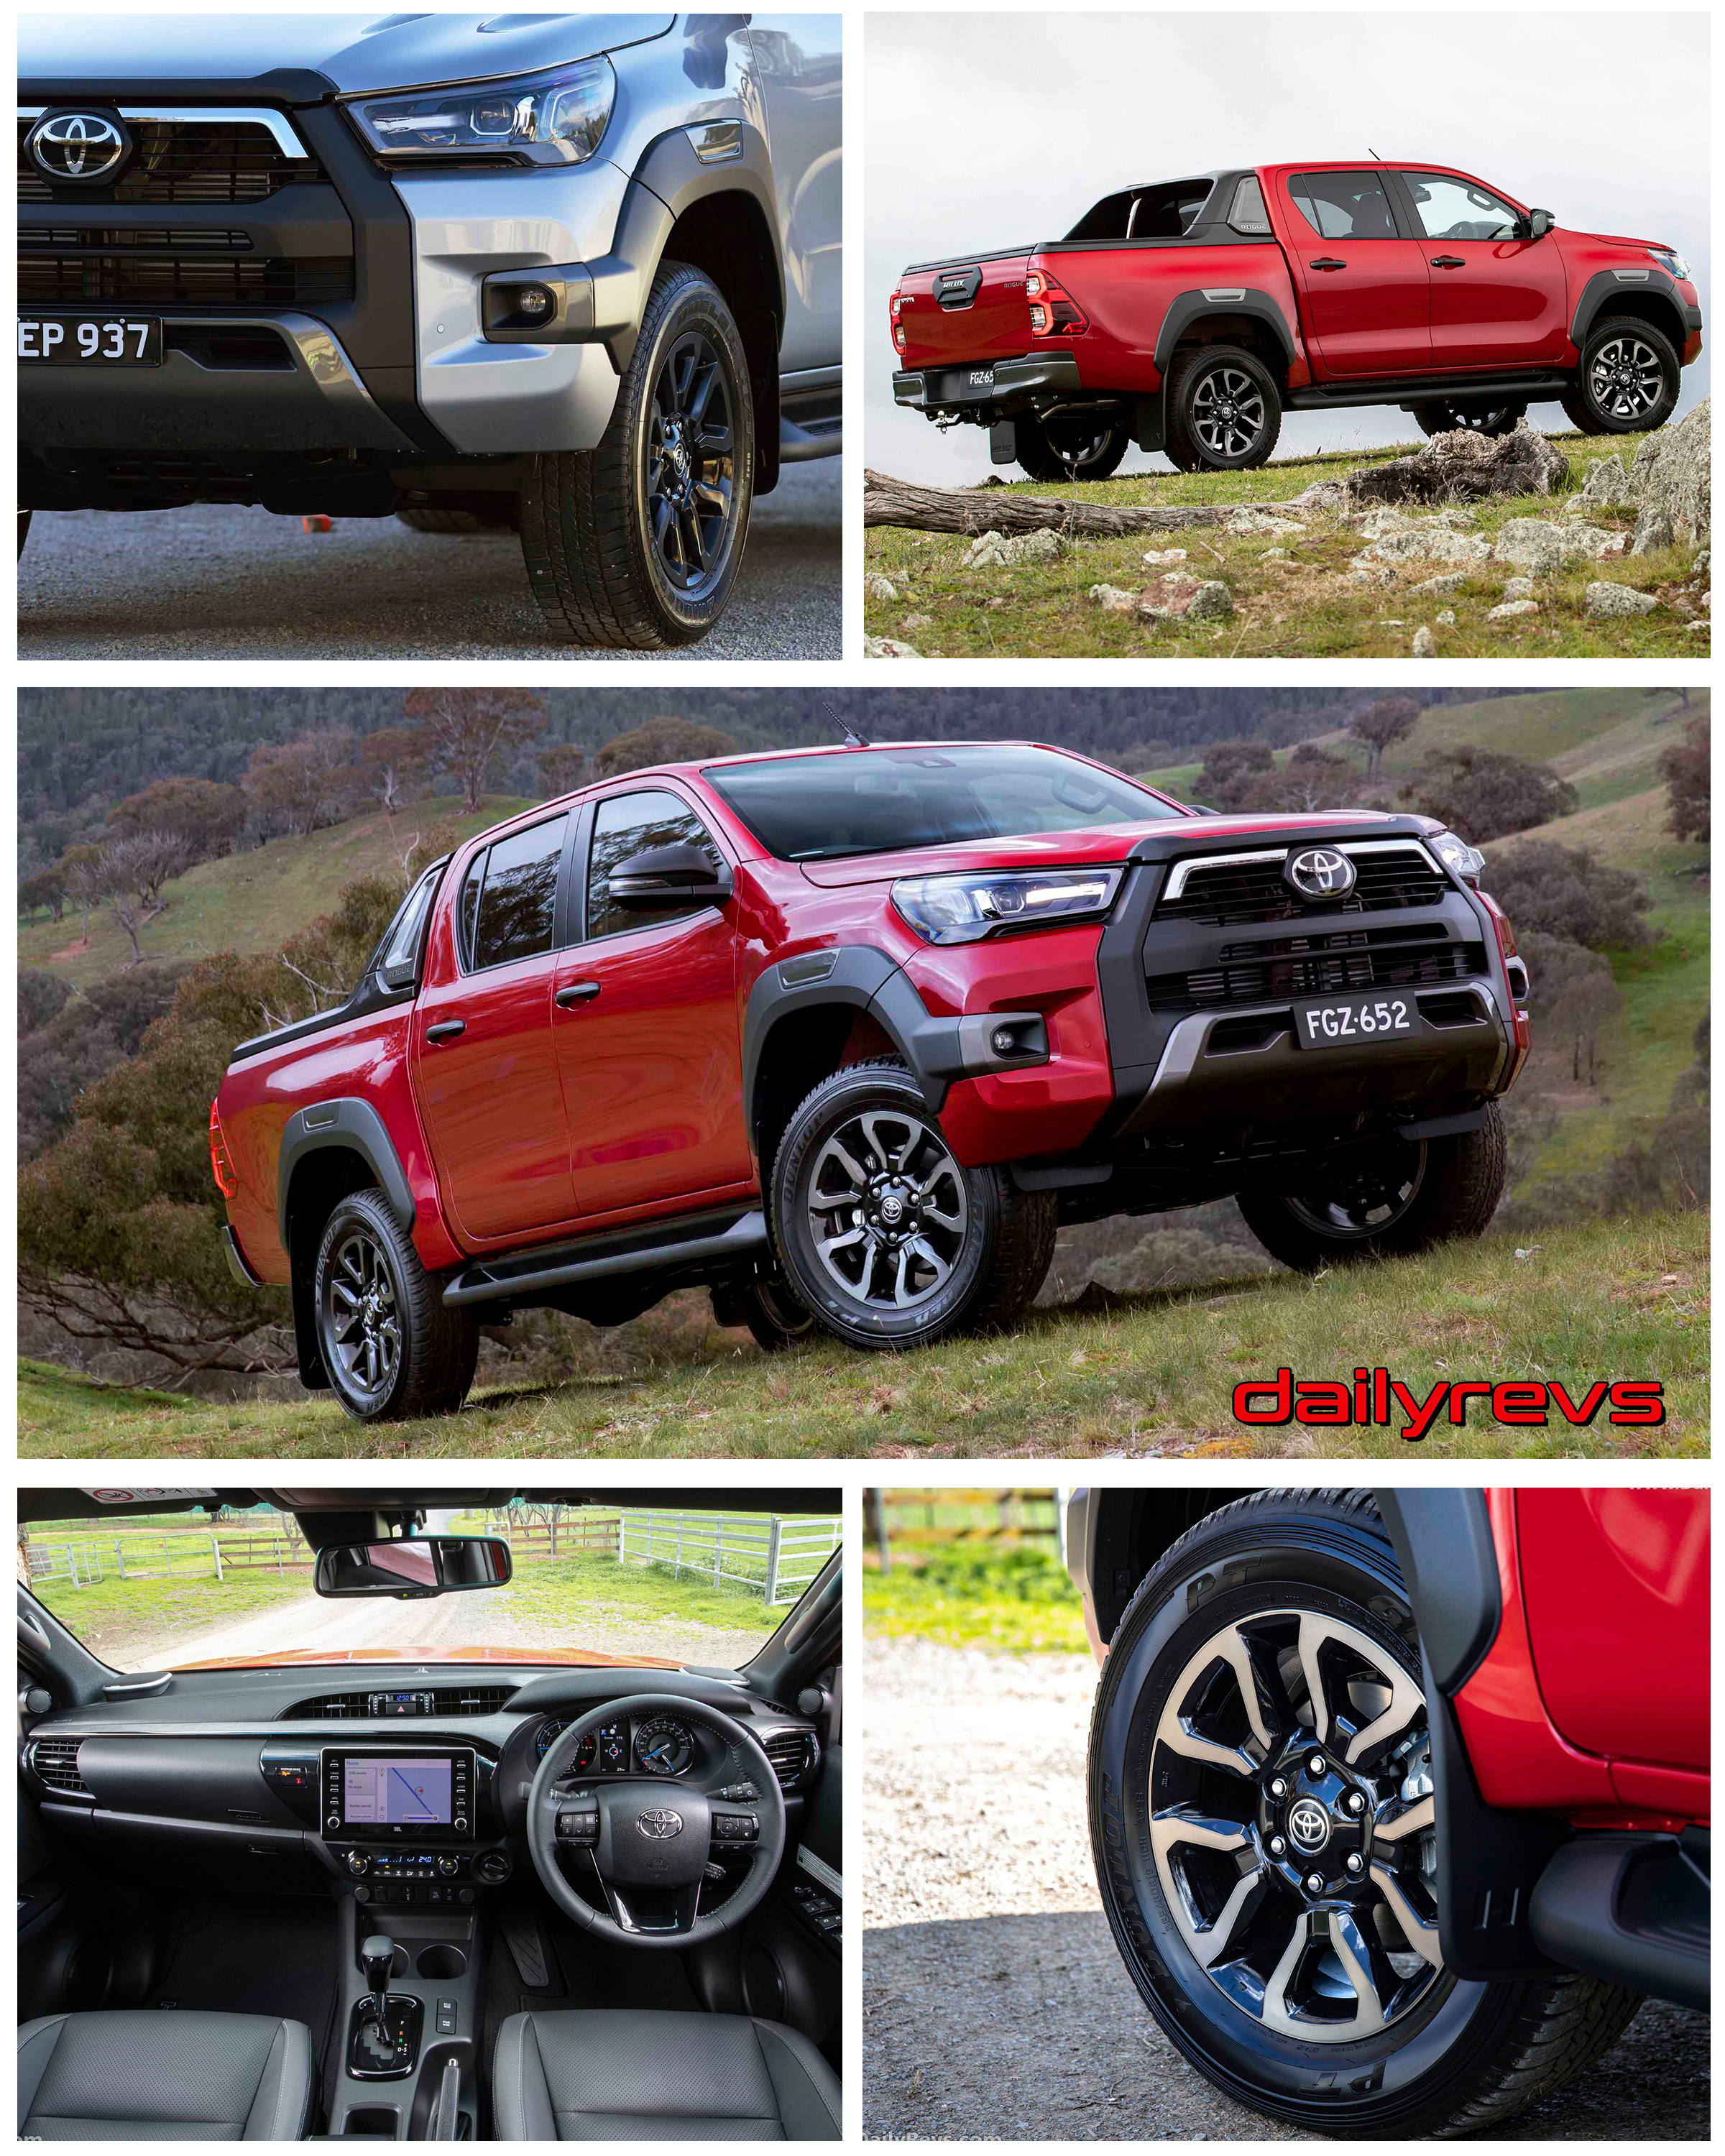 2021 toyota hilux rogue - dailyrevs